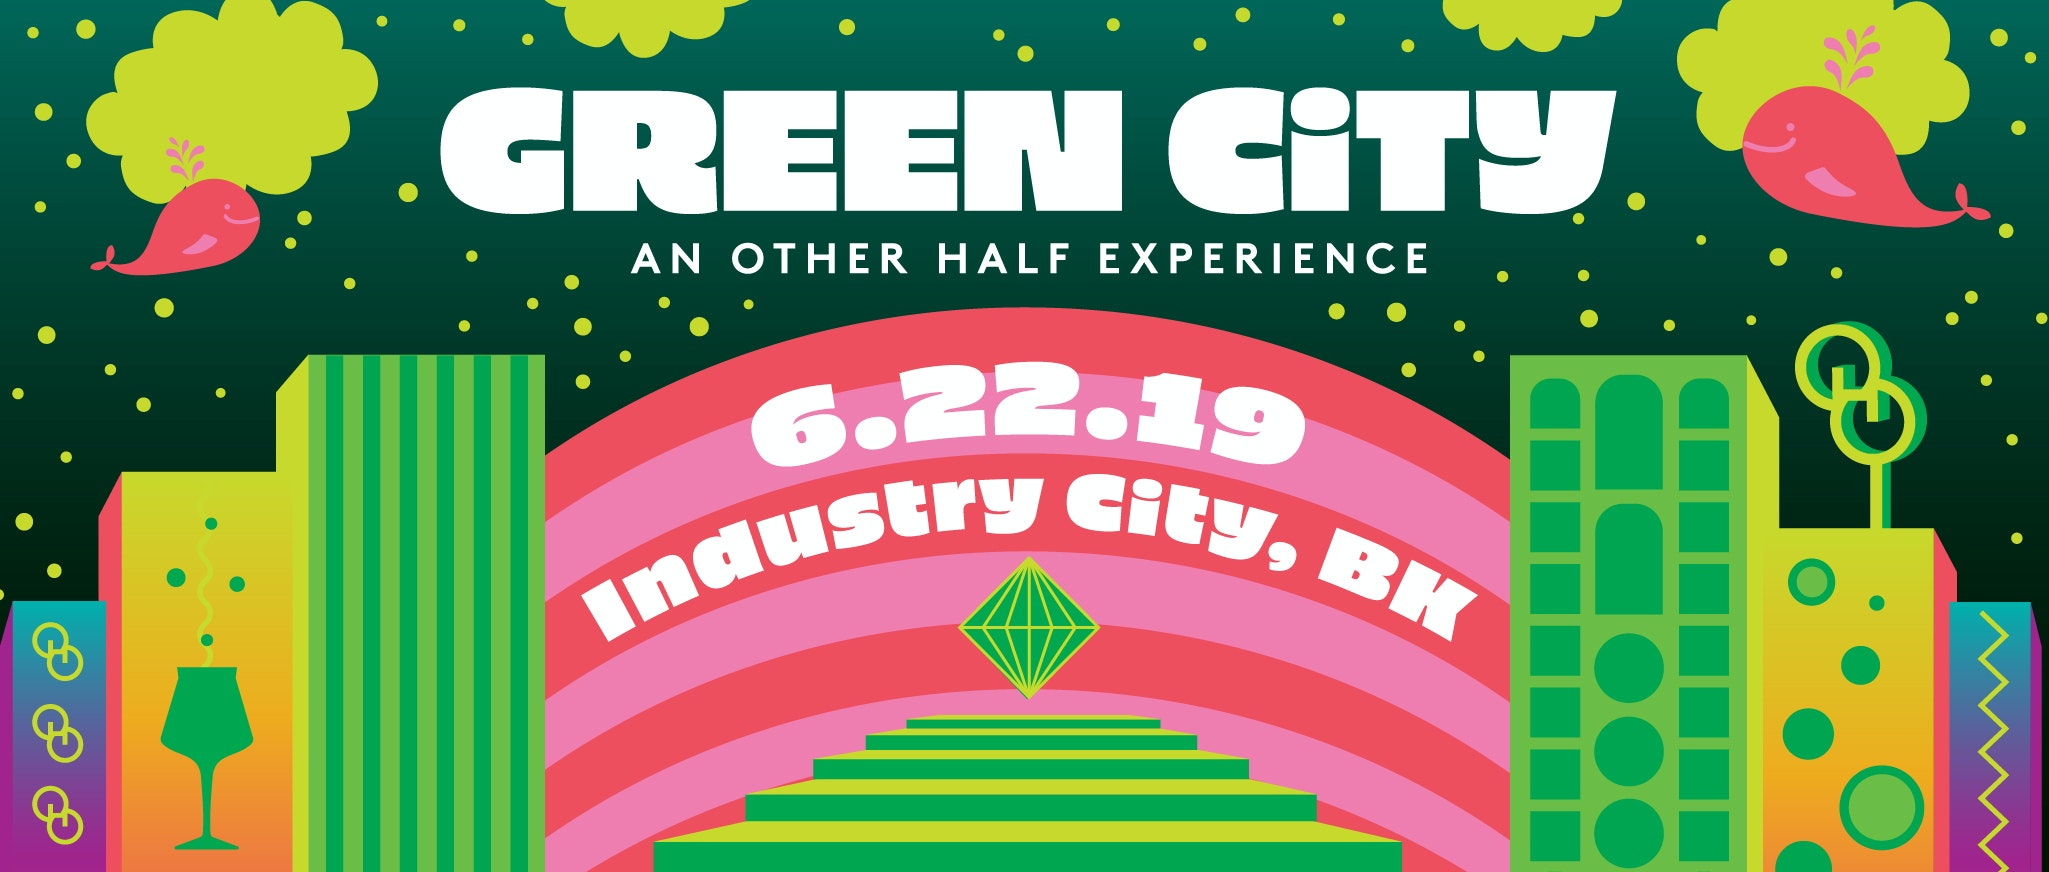 Green City - Event Website Header